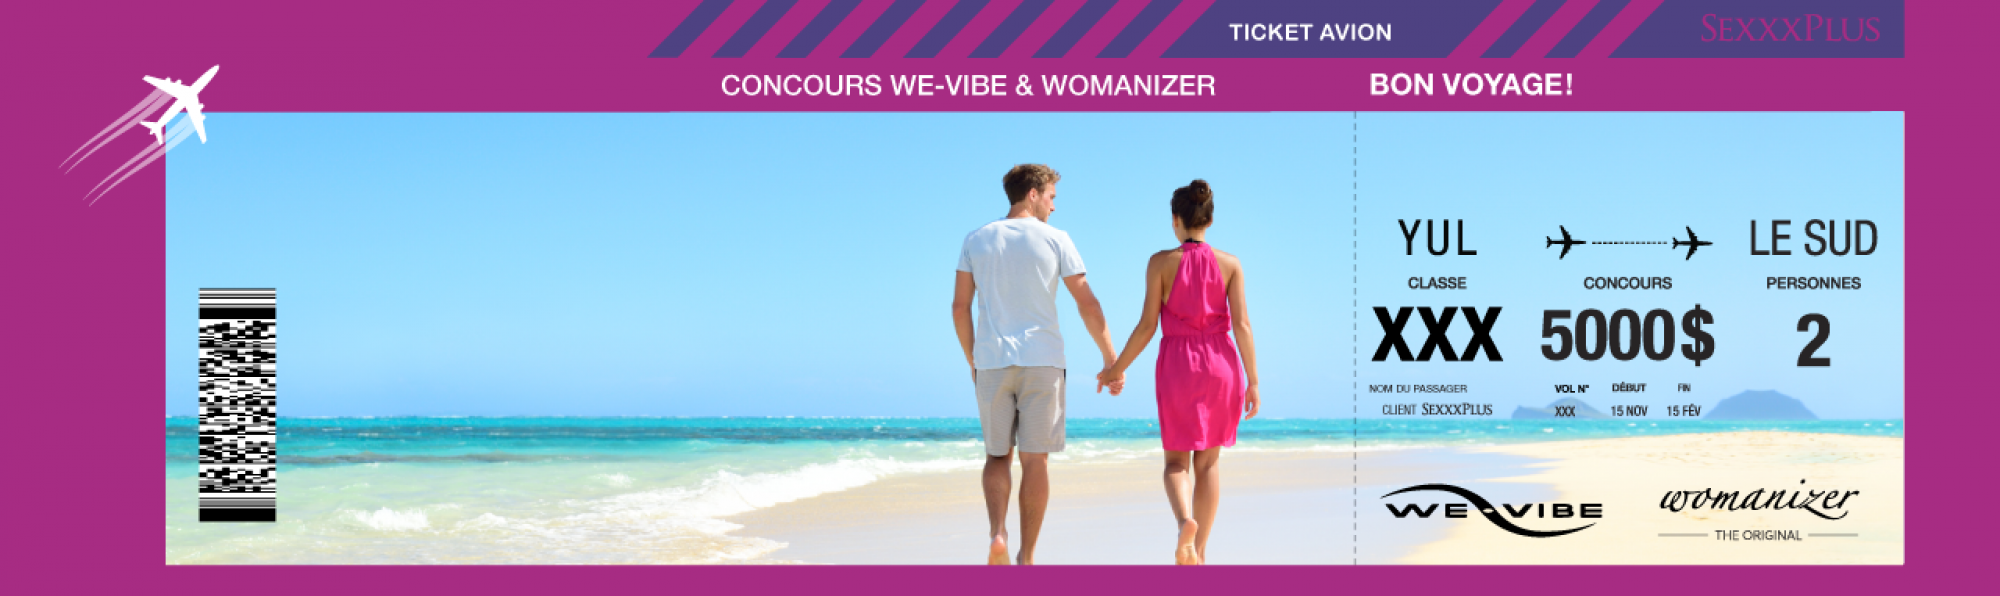 CONCOURS WE-VIBE &  WOMANIZER